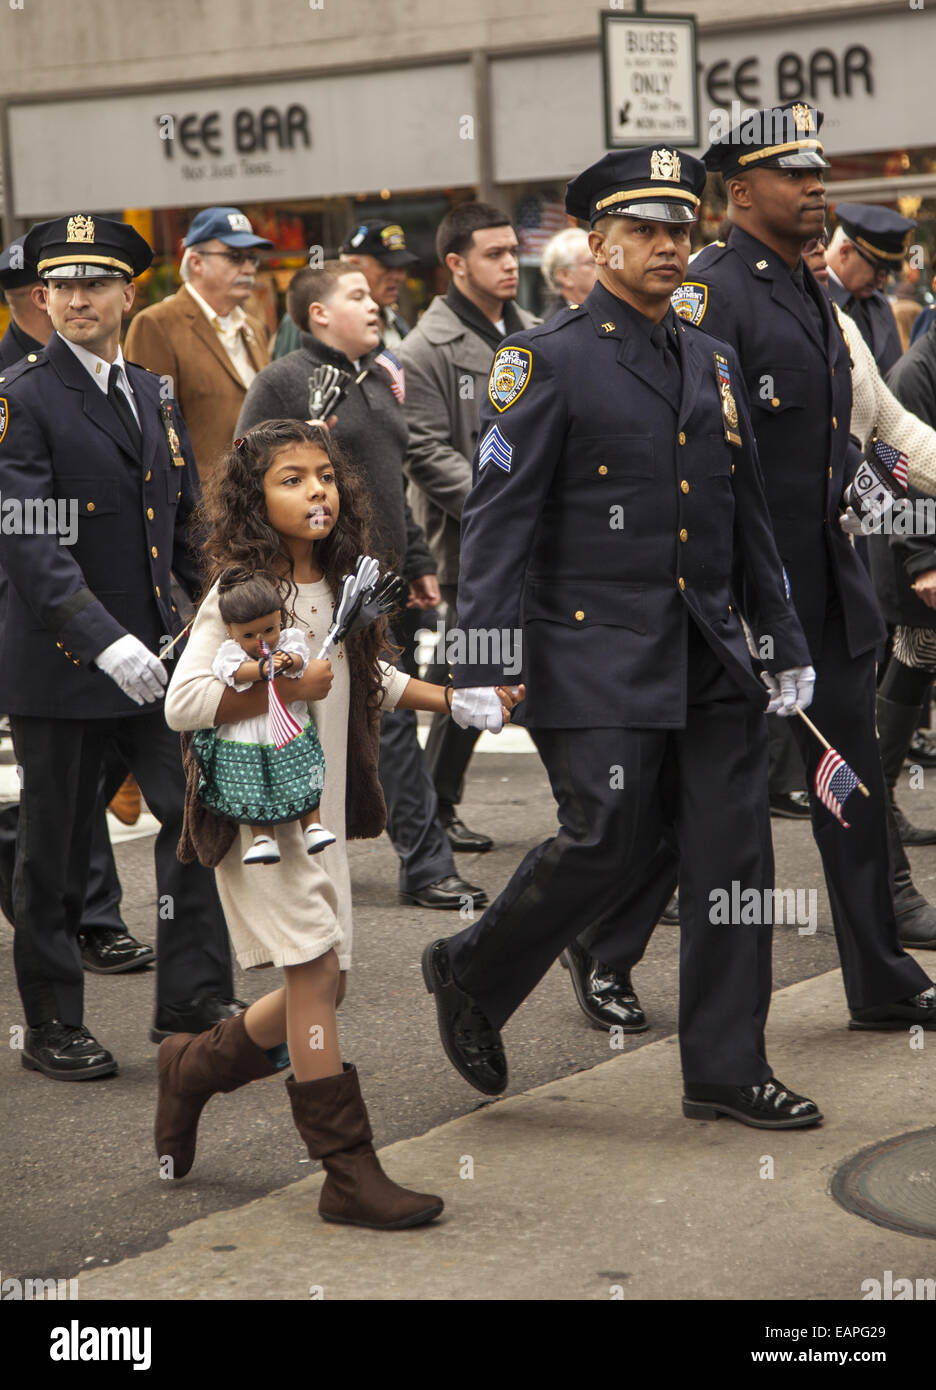 Veterans Day Parade, 5th Ave , New York City  NYC police